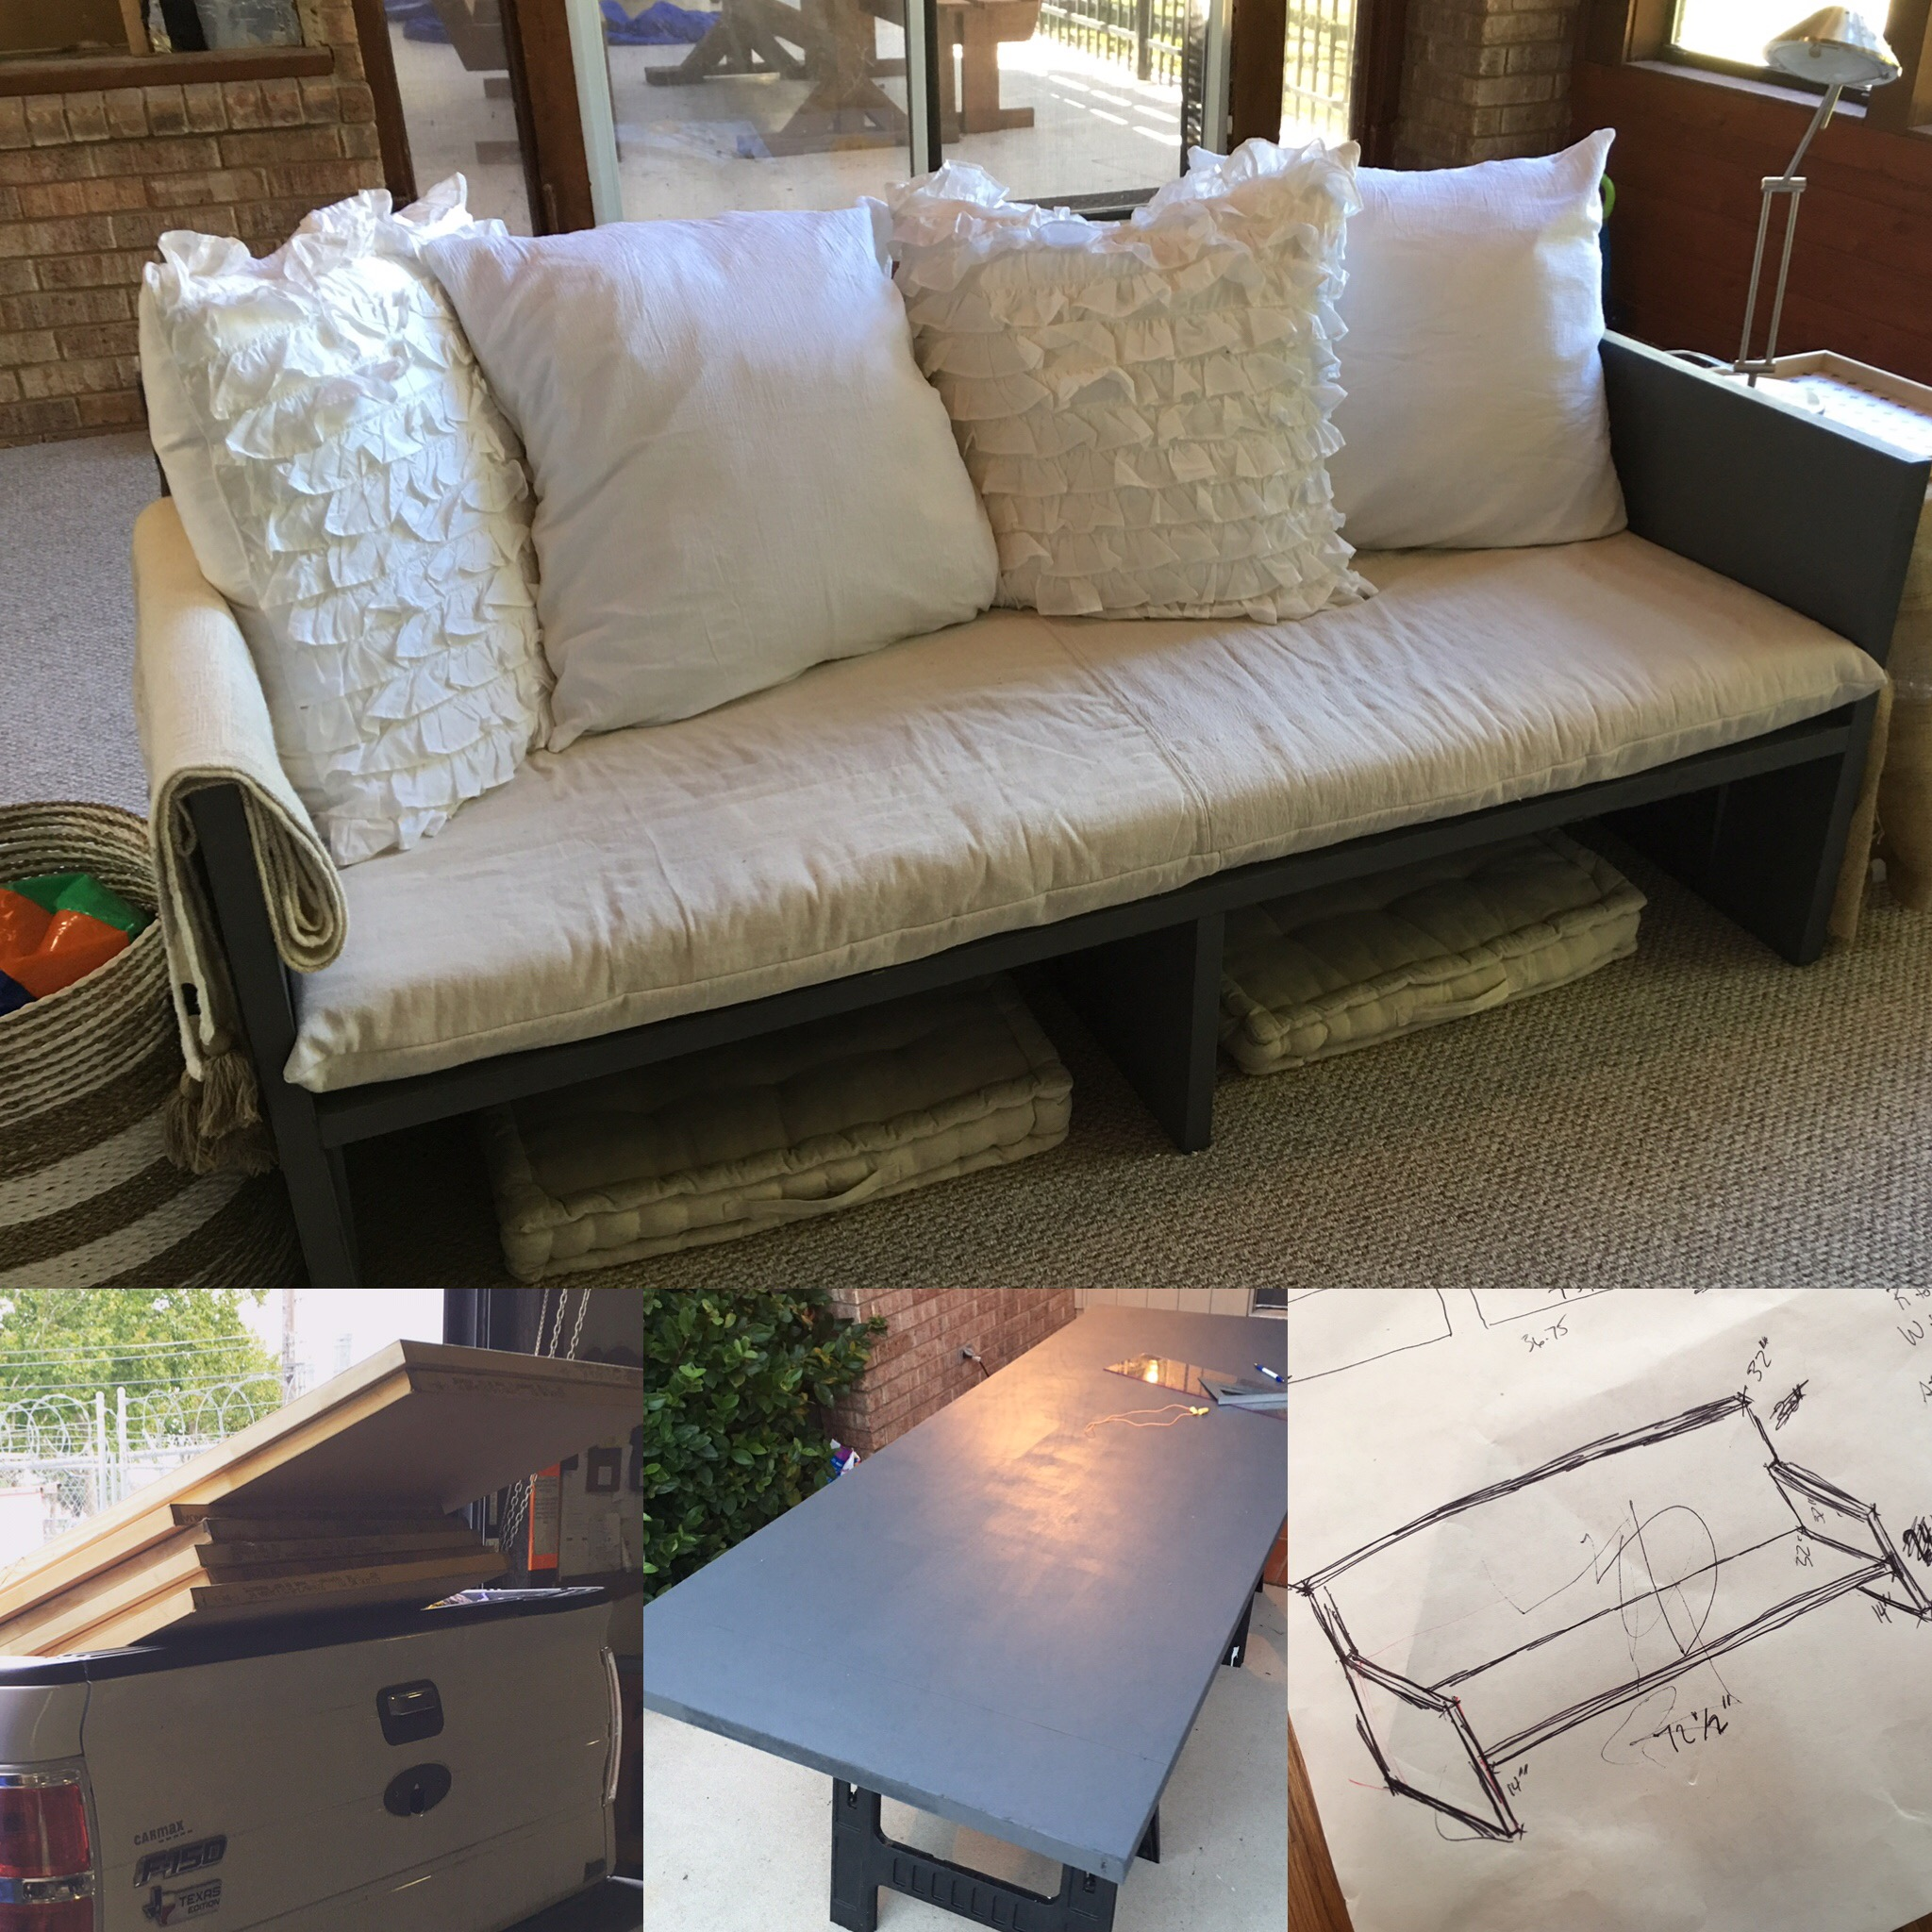 012D316C CDC1 4CCB 87EE B8855947C9AE?resize=511%2C511 how to build a sofa for $100 on house and home